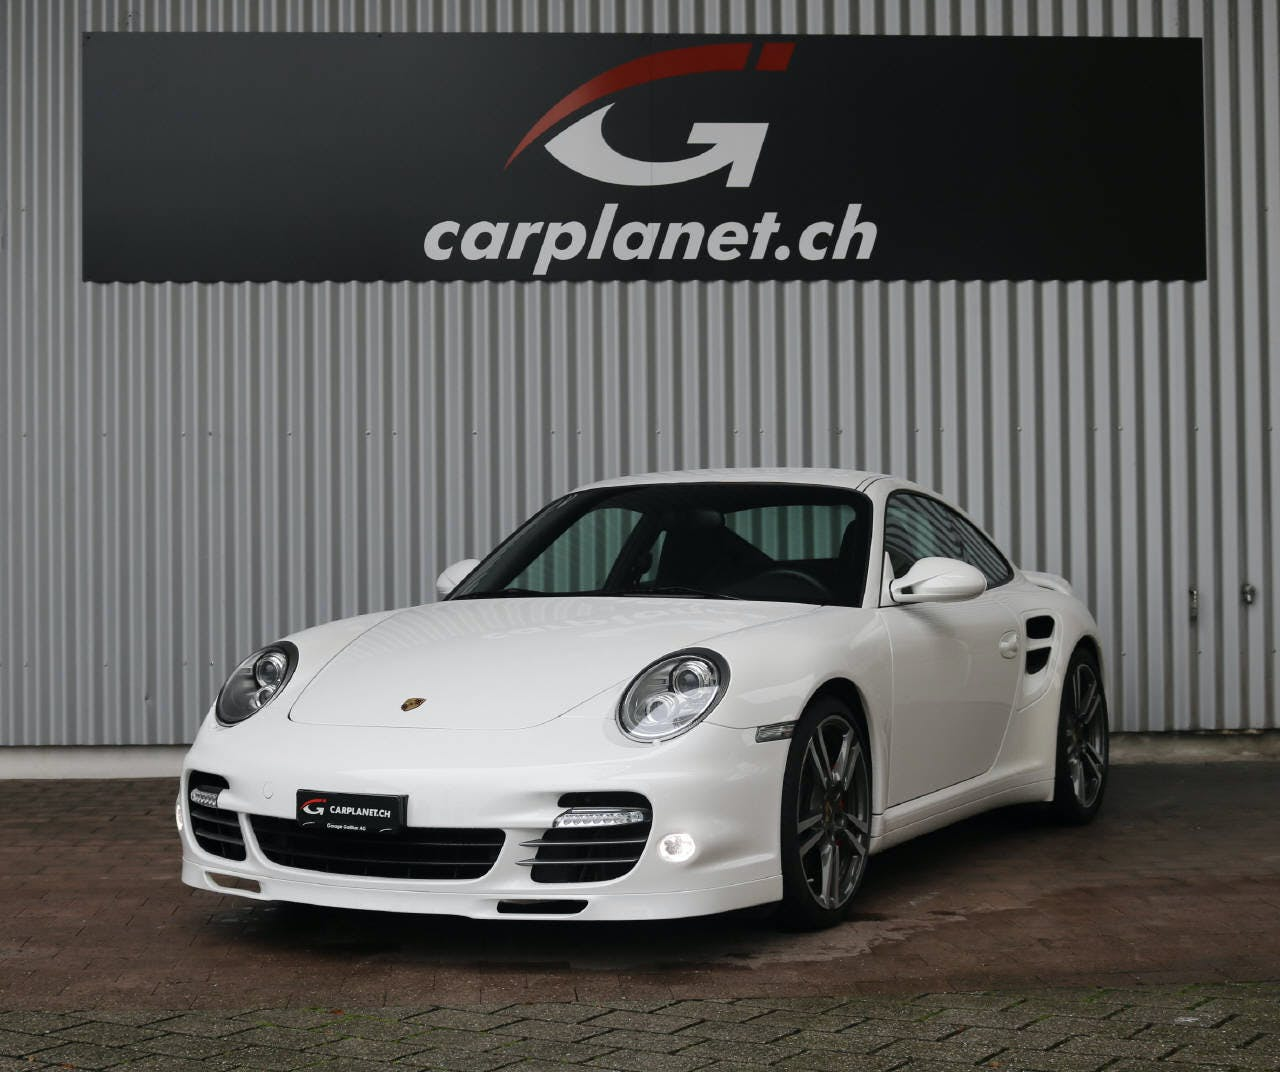 coupe Porsche 911 Coupé 3.8 Turbo 585 PS